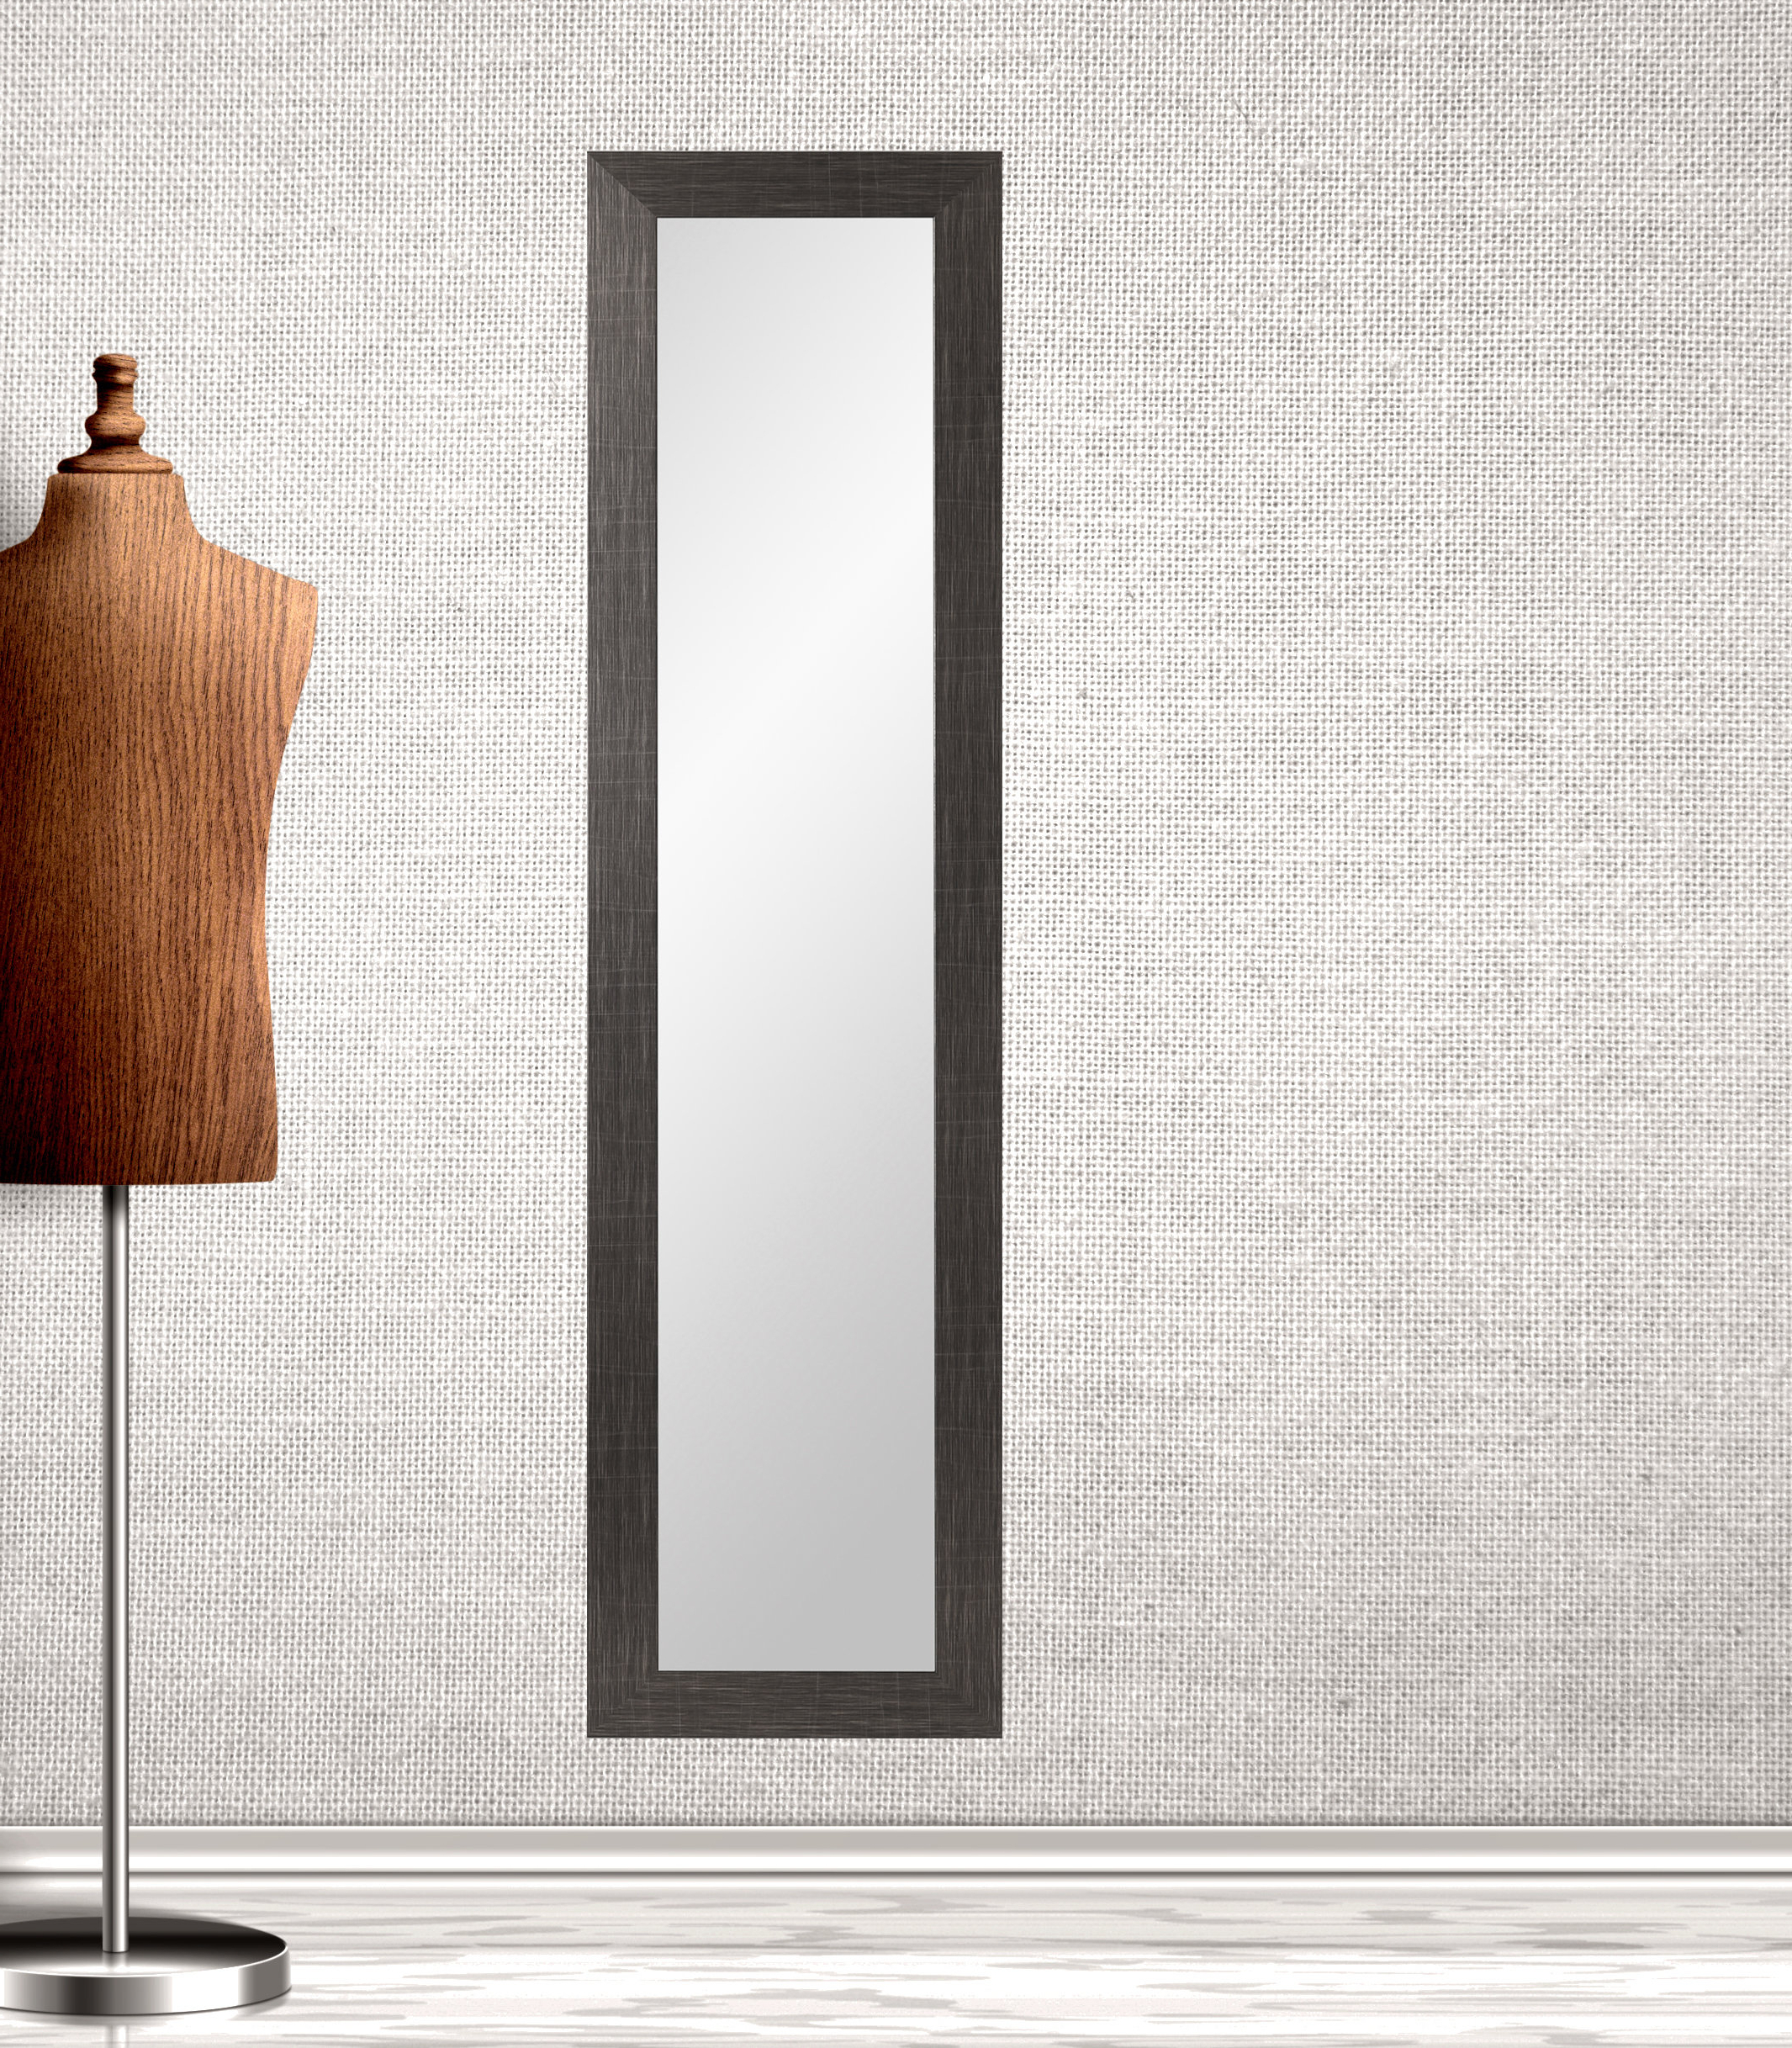 Finchamp Fitting Room Full Length Wall Mirror Regarding Most Current Full Length Wall Mirrors (View 6 of 20)